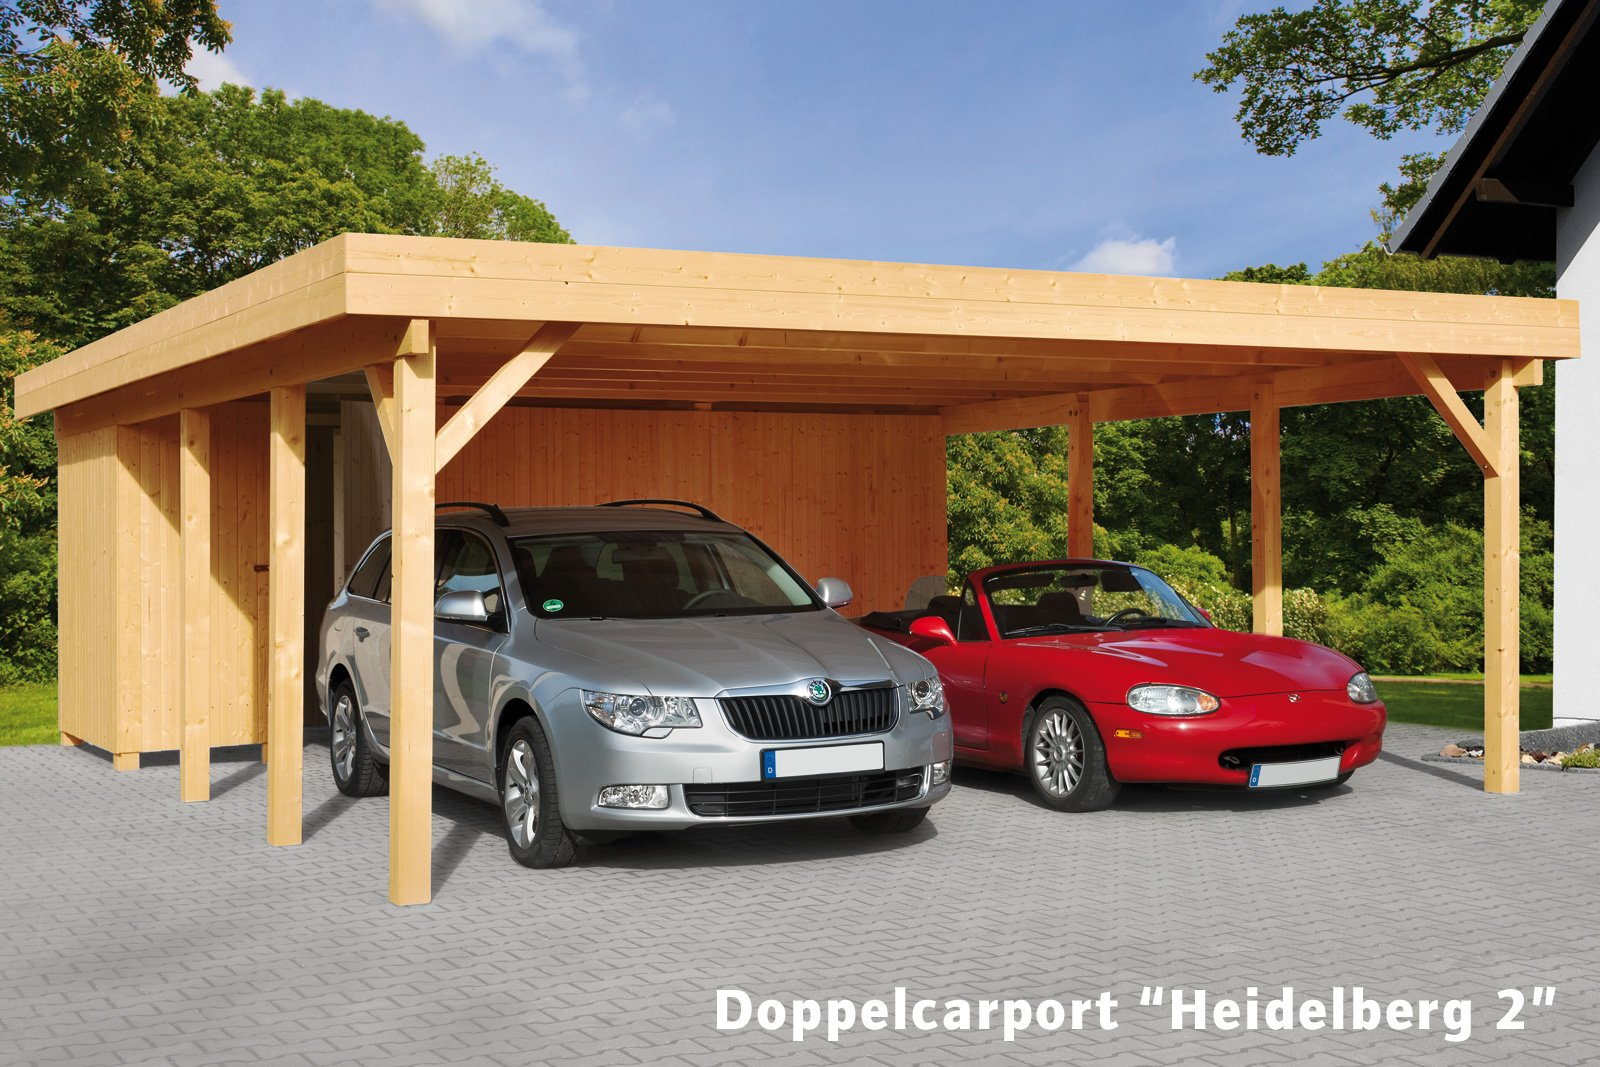 doppelcarport heidelberg 2 bauking direkt. Black Bedroom Furniture Sets. Home Design Ideas